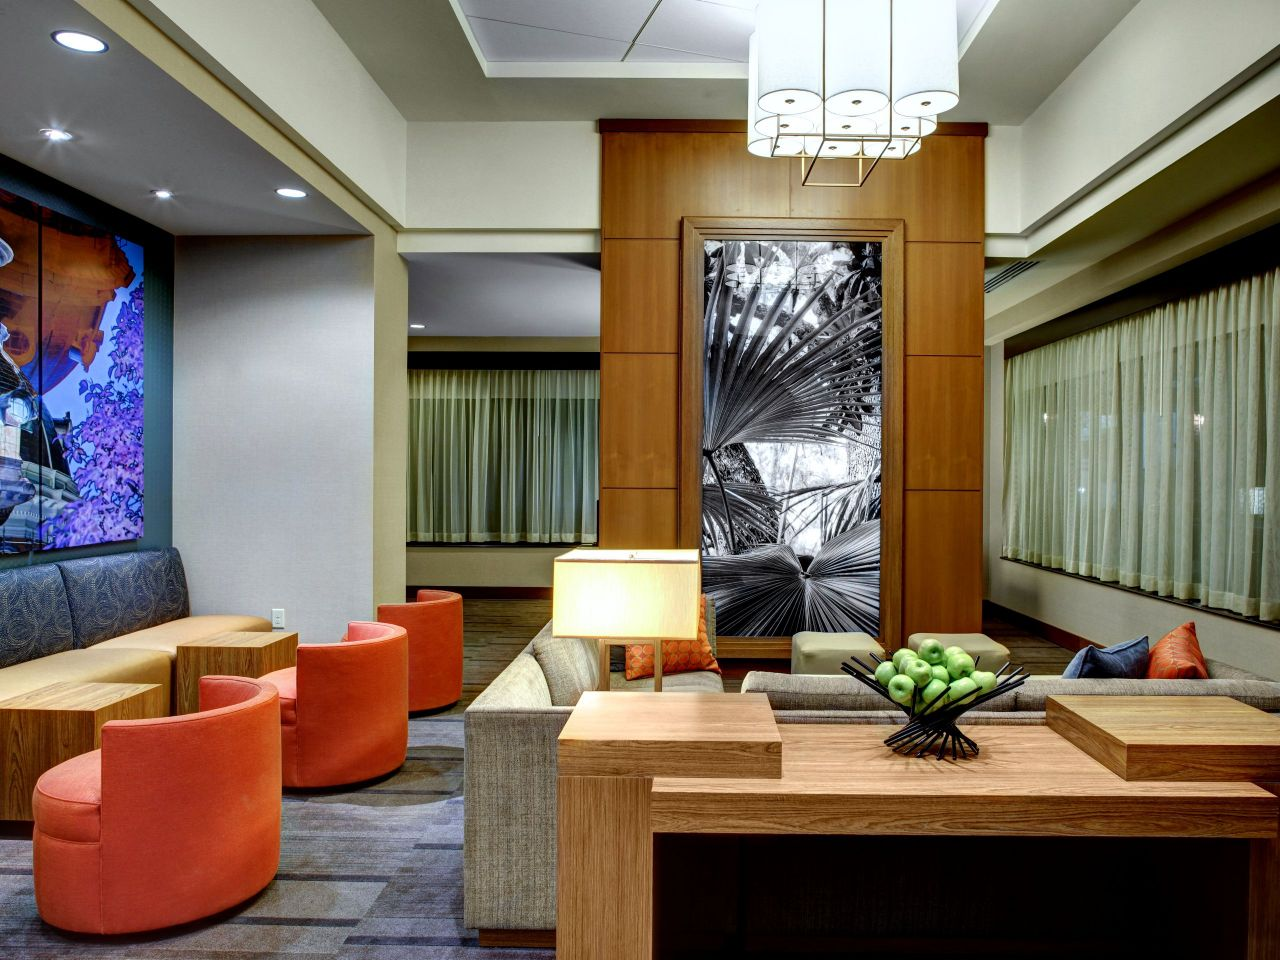 Hyatt Place Columbia / Downtown / The Vista lobby